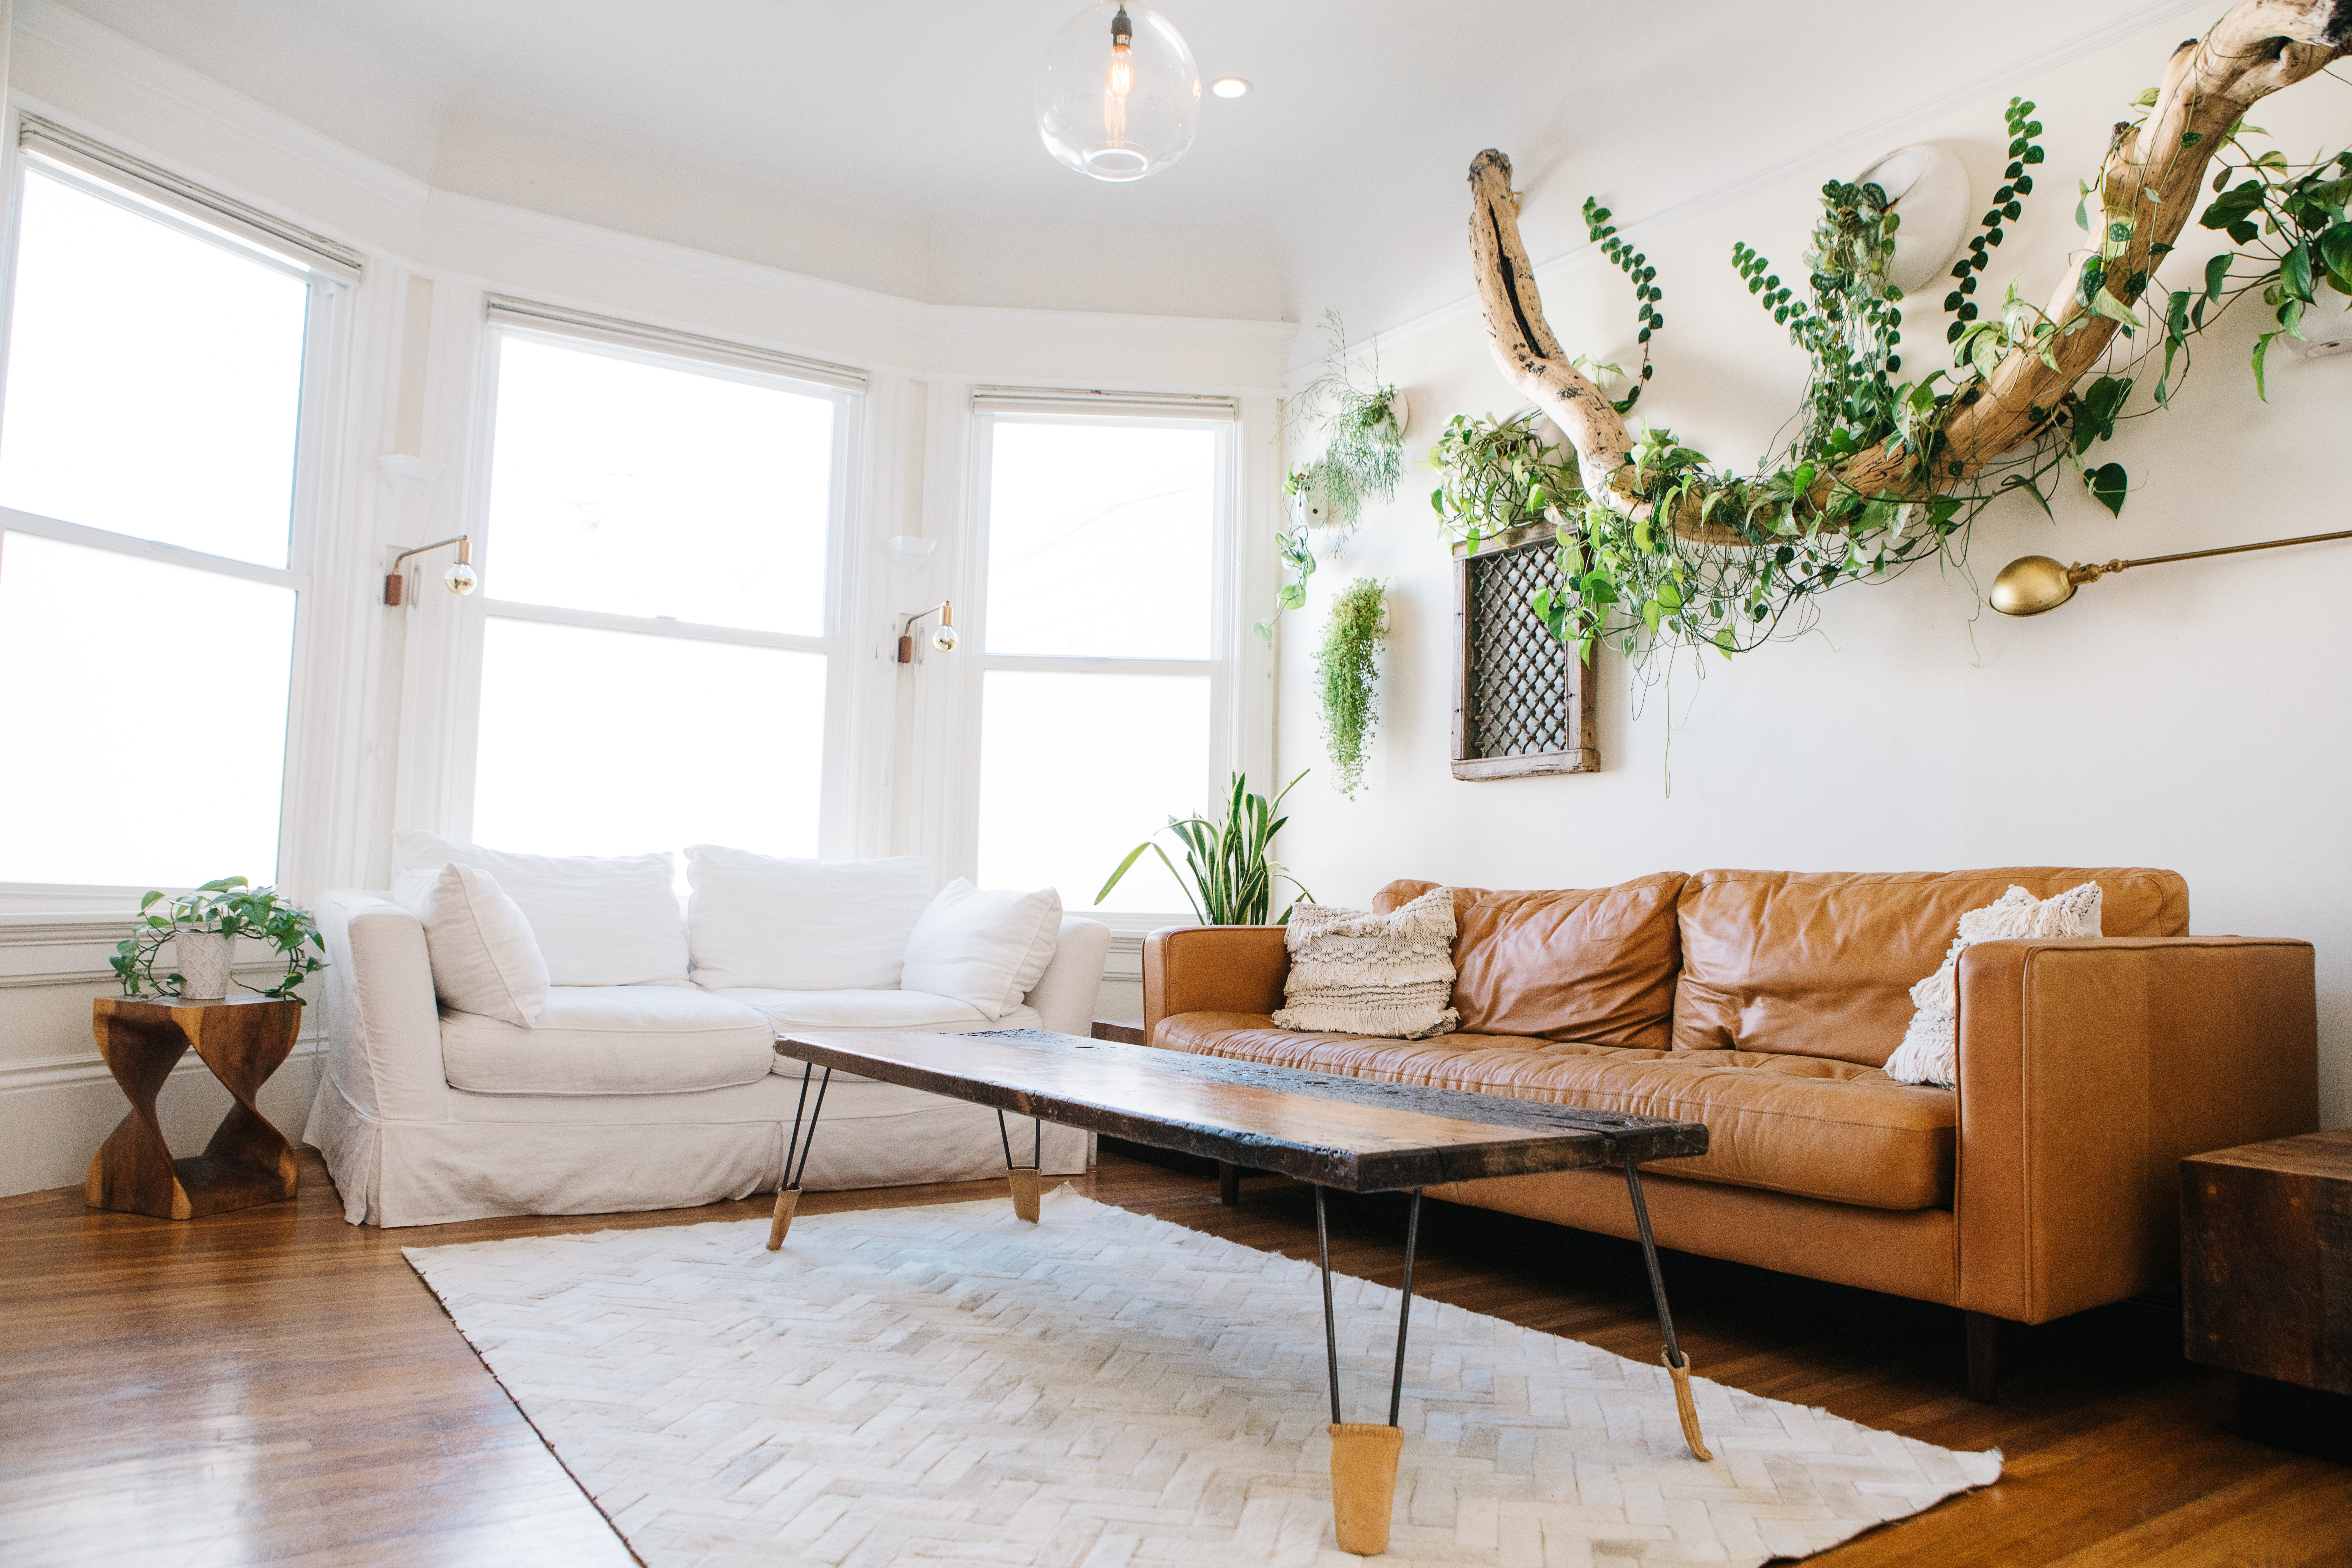 Everything You Need To Know About Renting Furniture Renter Life,How Much To Give For A Wedding Gift Cash 2020